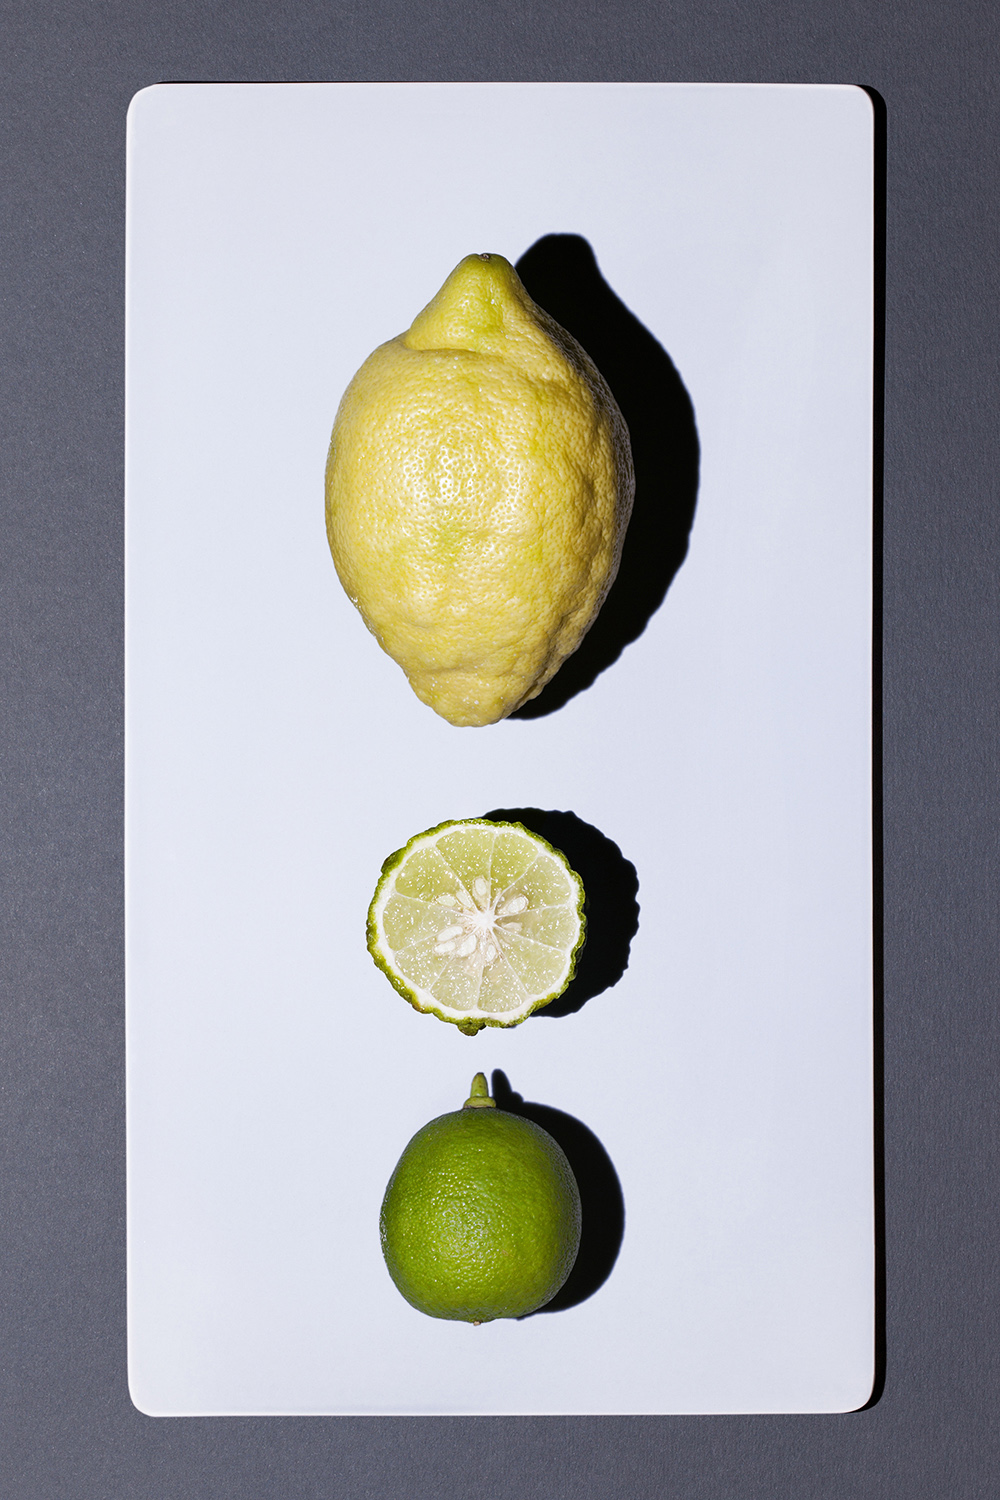 lemon_and_lime_halves_01.jpg